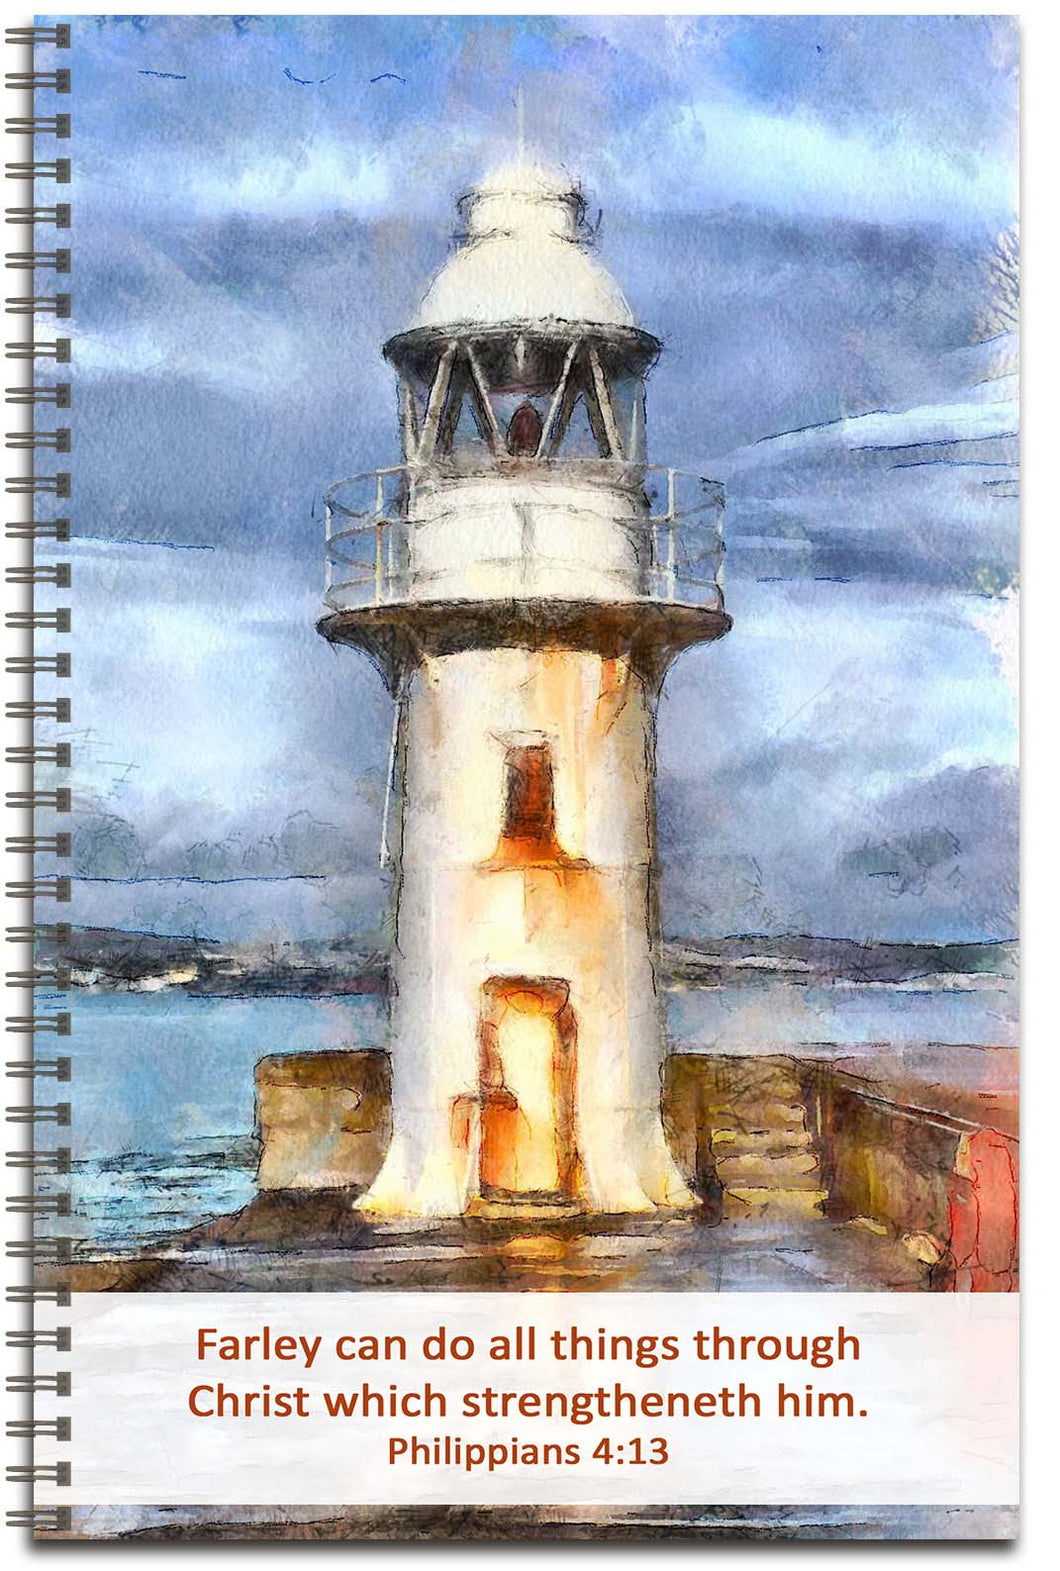 Guiding Light - Personalized Journal